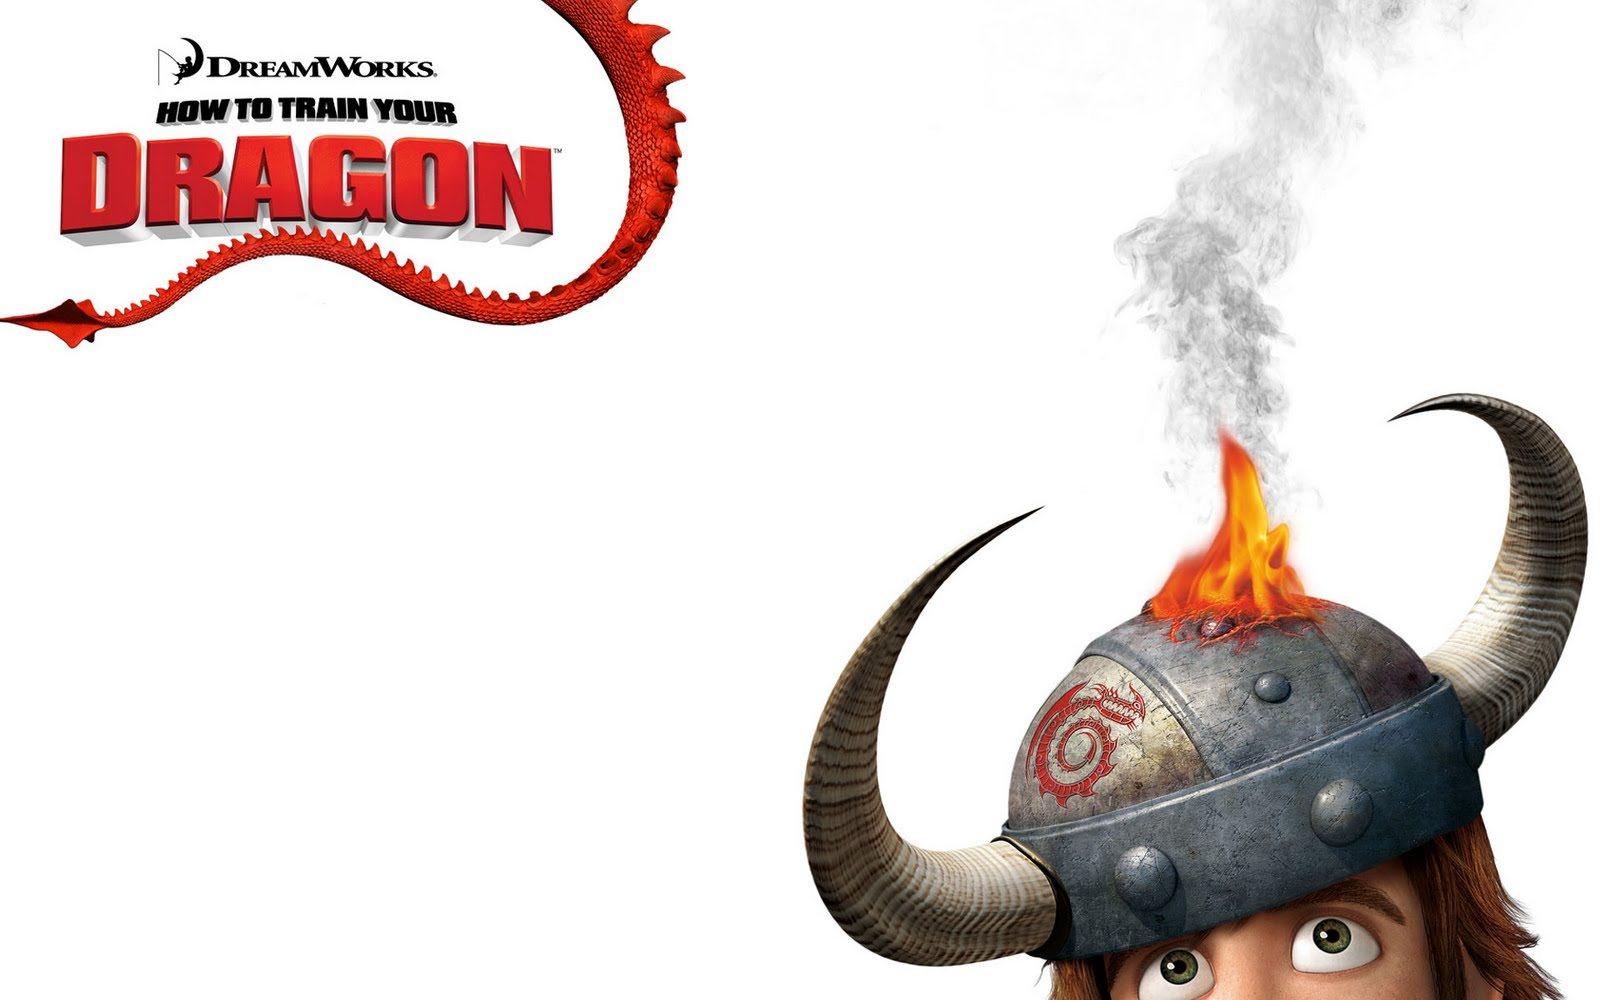 Deanne morrison white flower background - How To Train Your Dragon Wallpaper Posted By Deanne Morrison